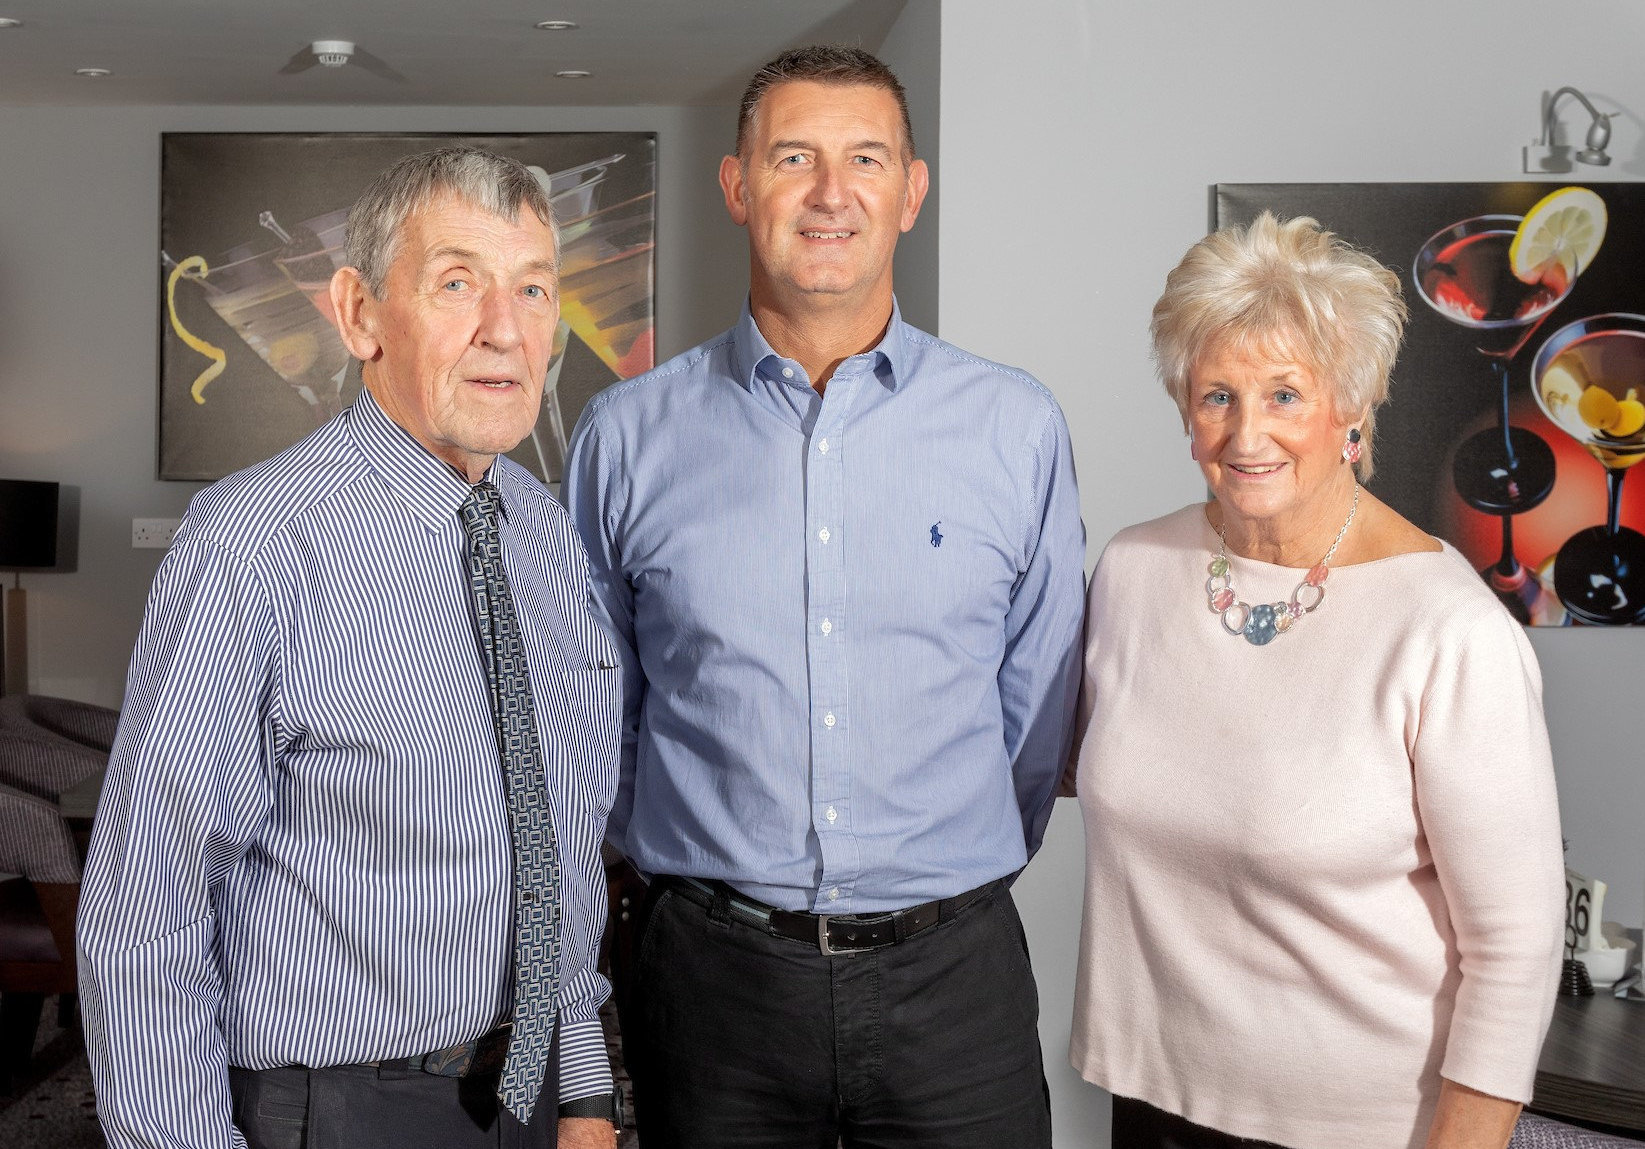 Founder Stuart Hutton, Managing Director Kenny Hutton and Director Eveline Hutton.